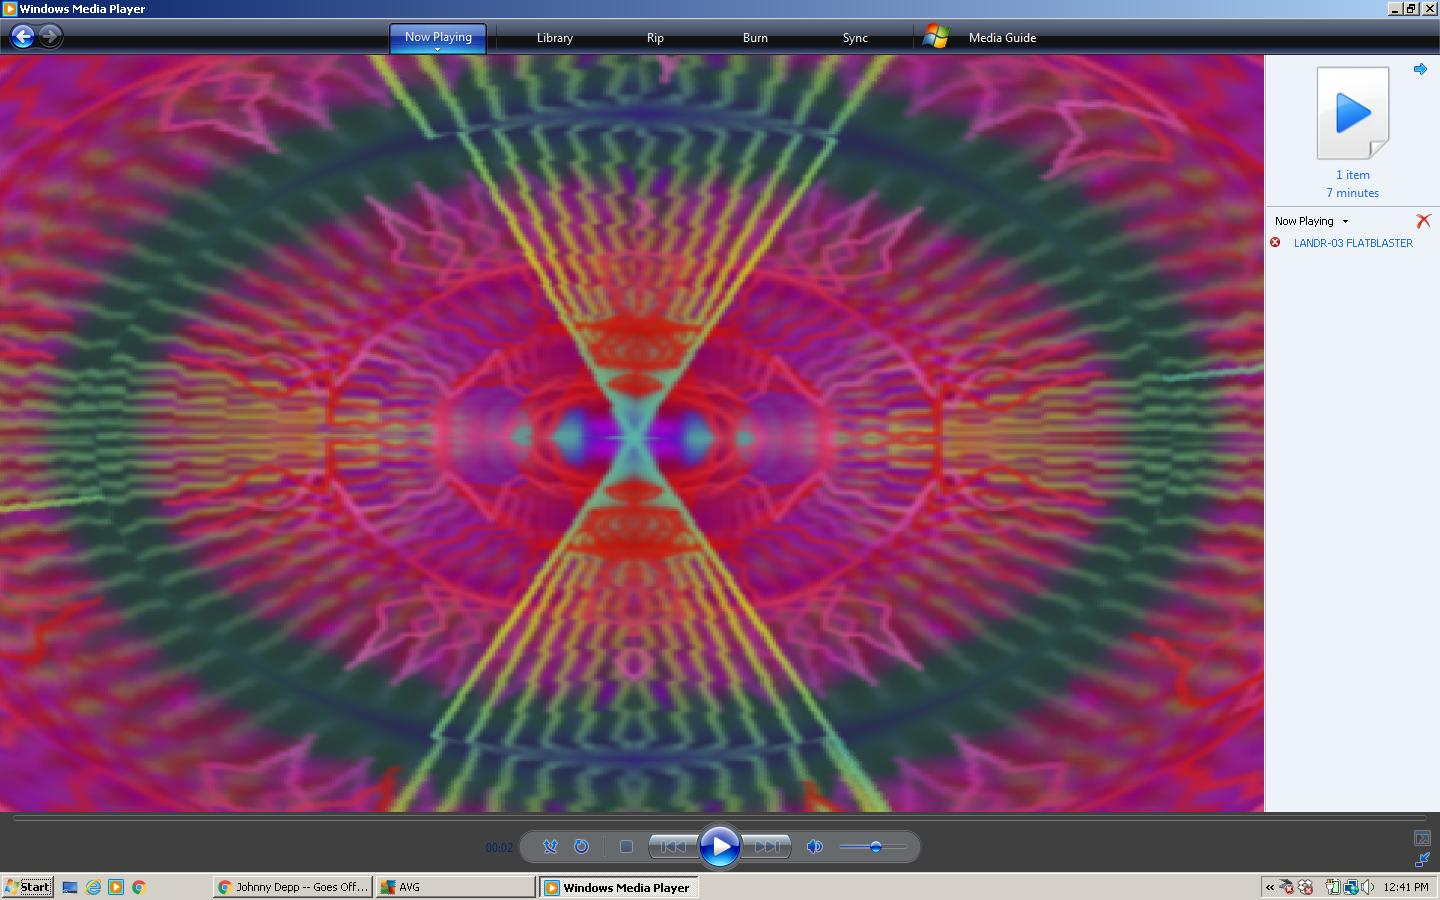 windows media player www.edmpr.com